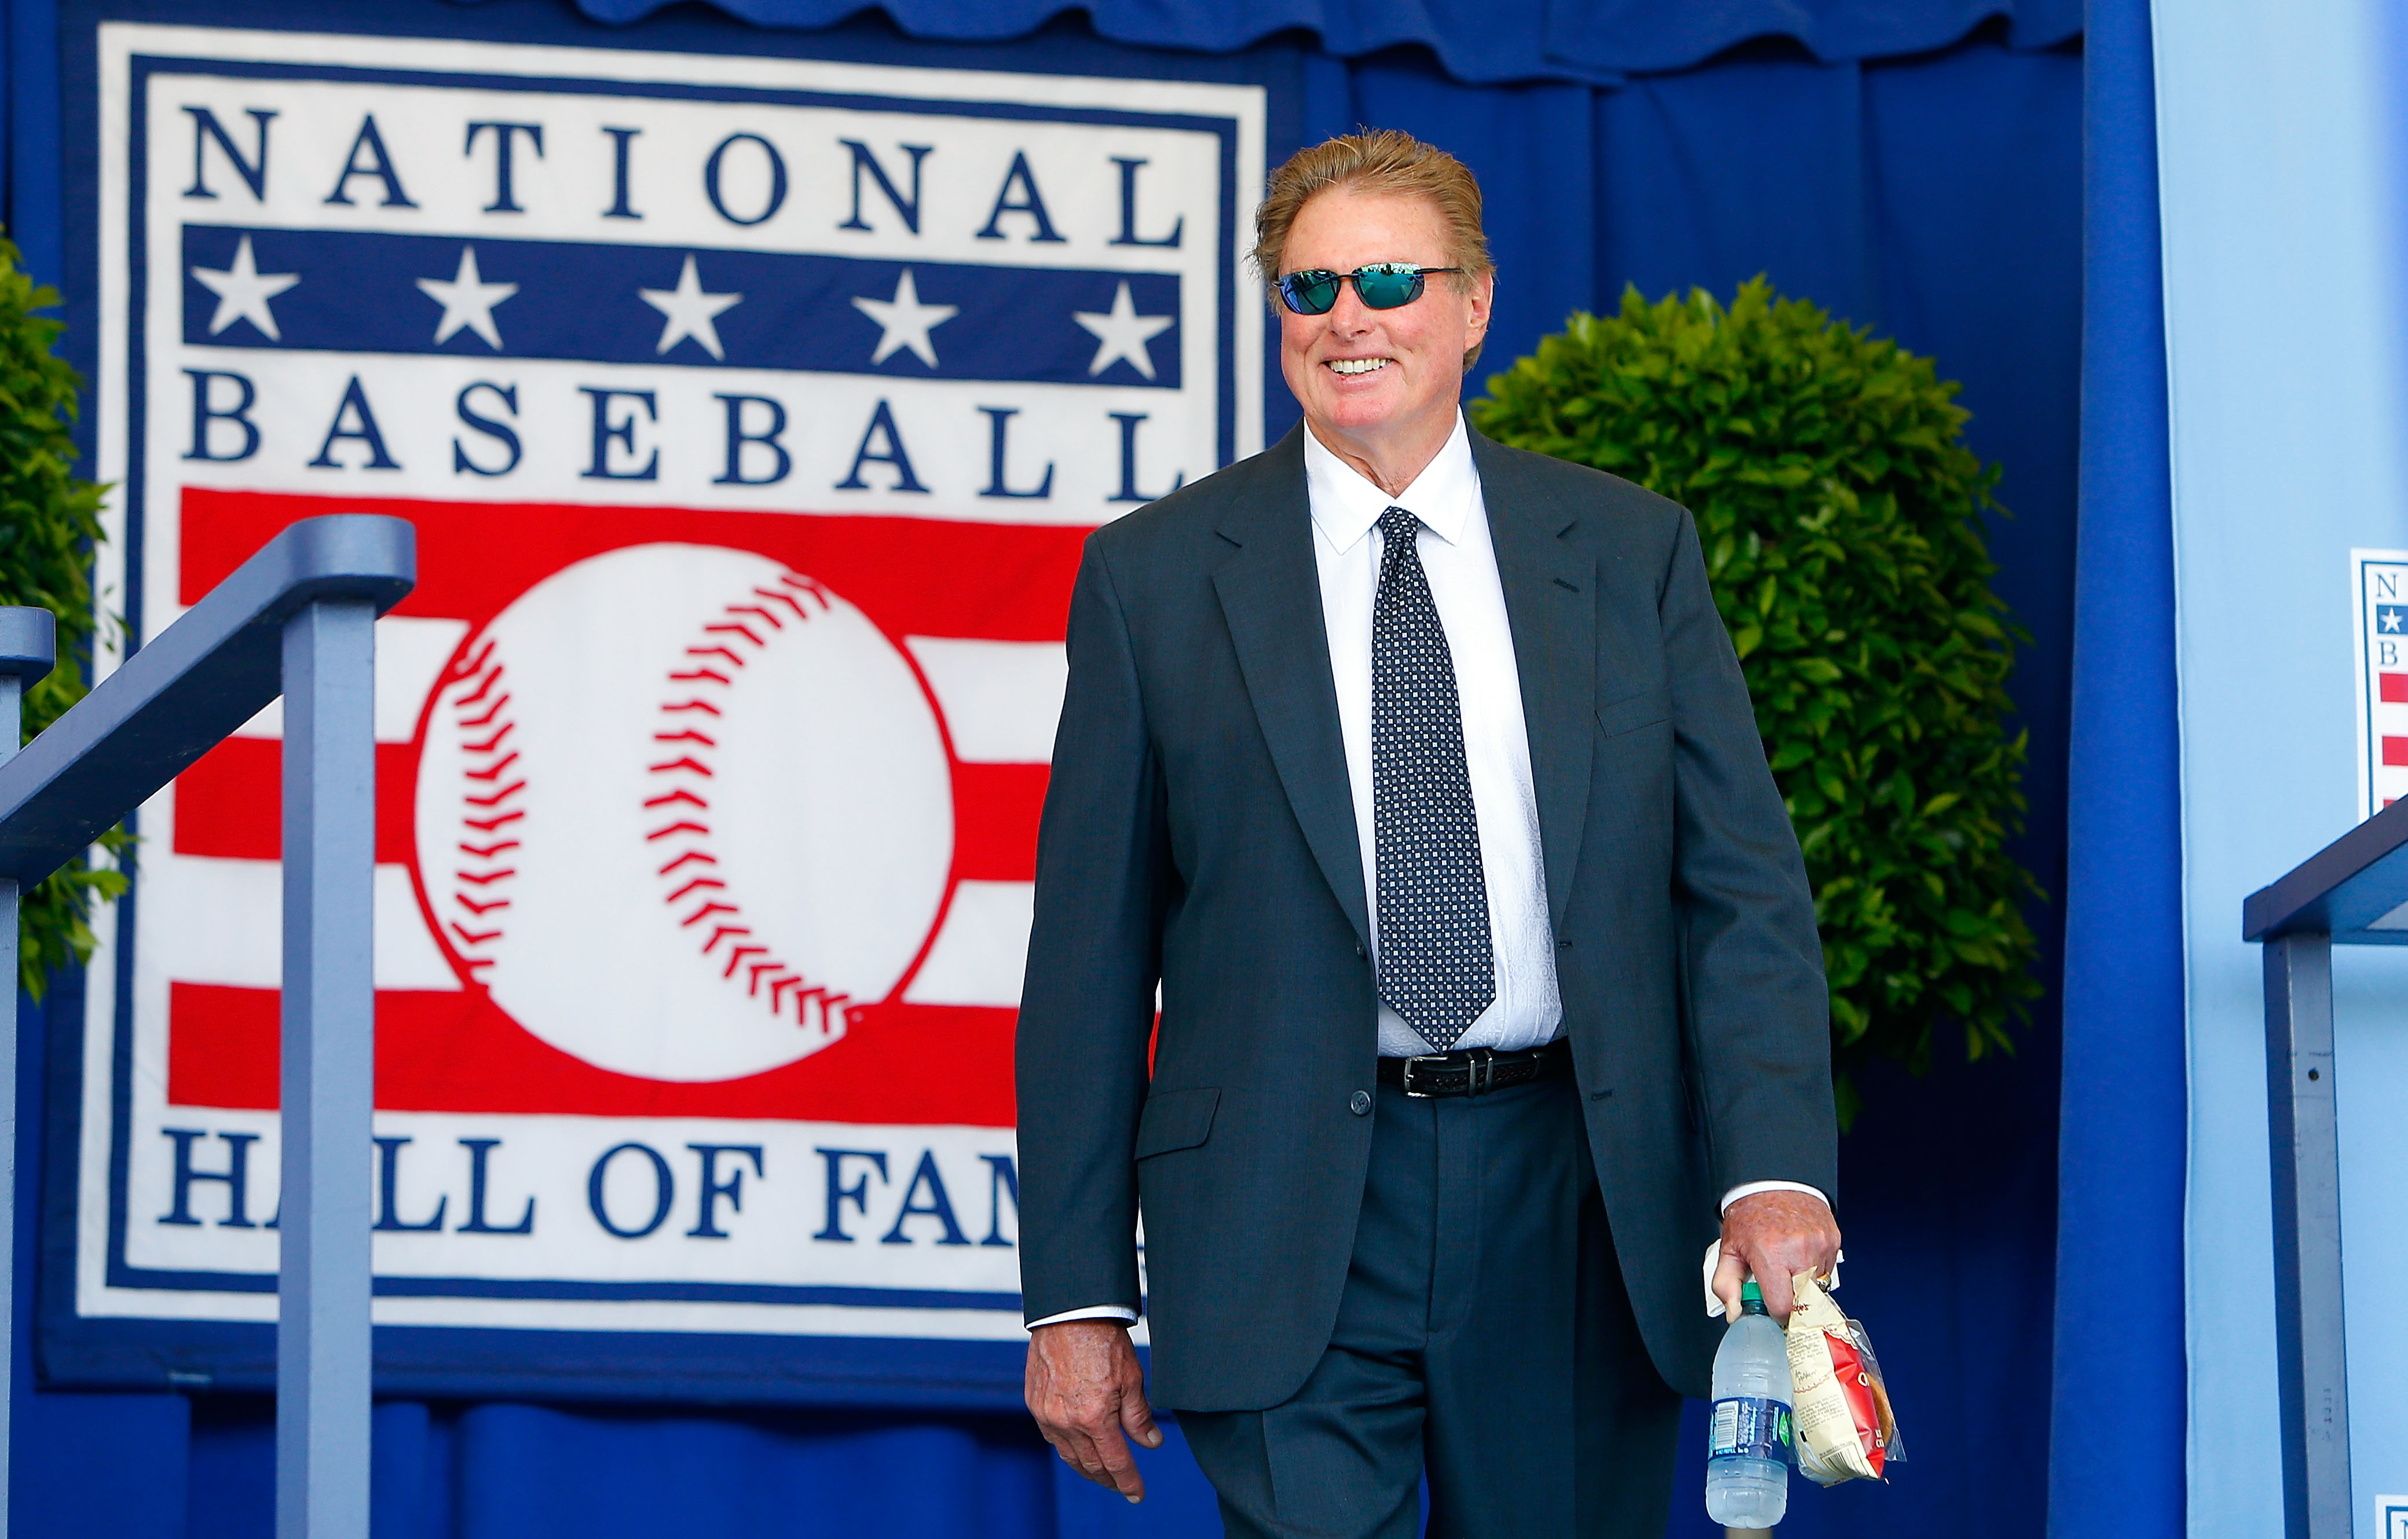 585464642-2016-baseball-hall-of-fame-induction-ceremony.jpg